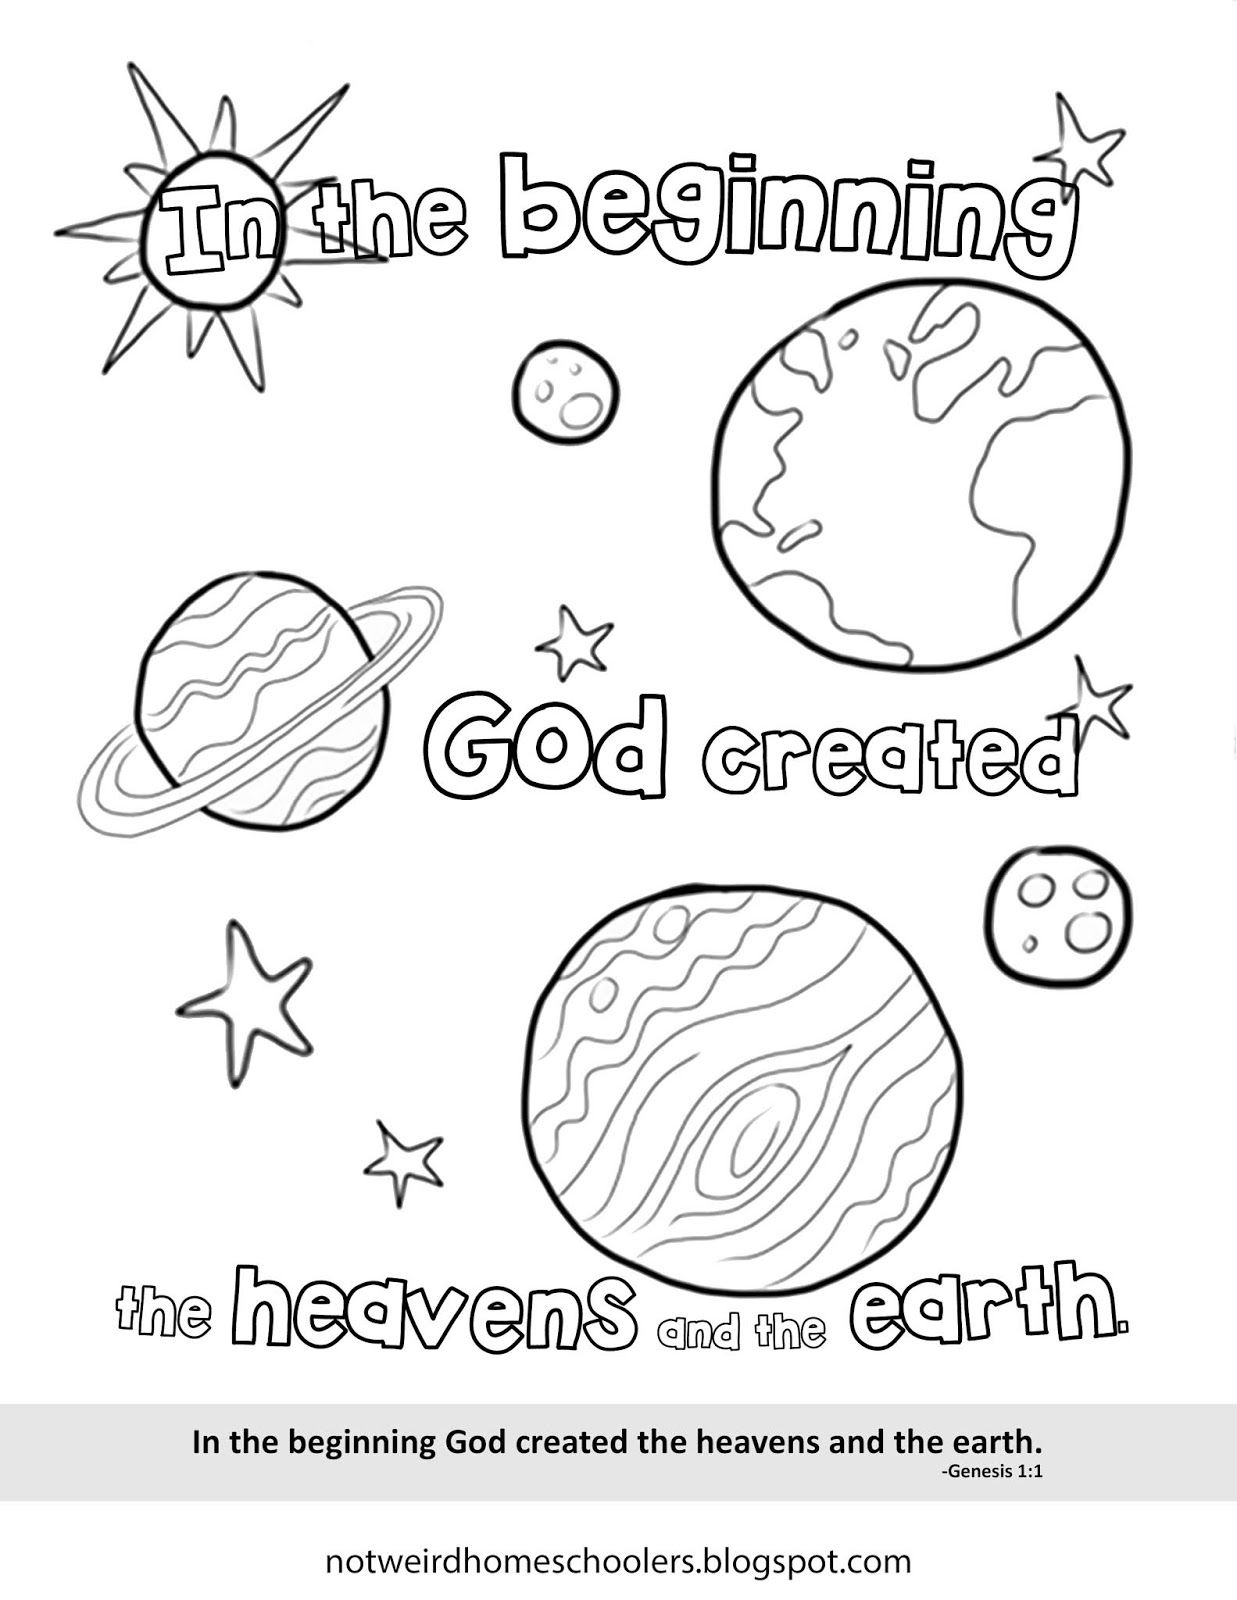 Free Homeschooling Resource Genesis 1 1 Coloring Page Bible Worksheets Bible Coloring Pages Sunday School Coloring Pages